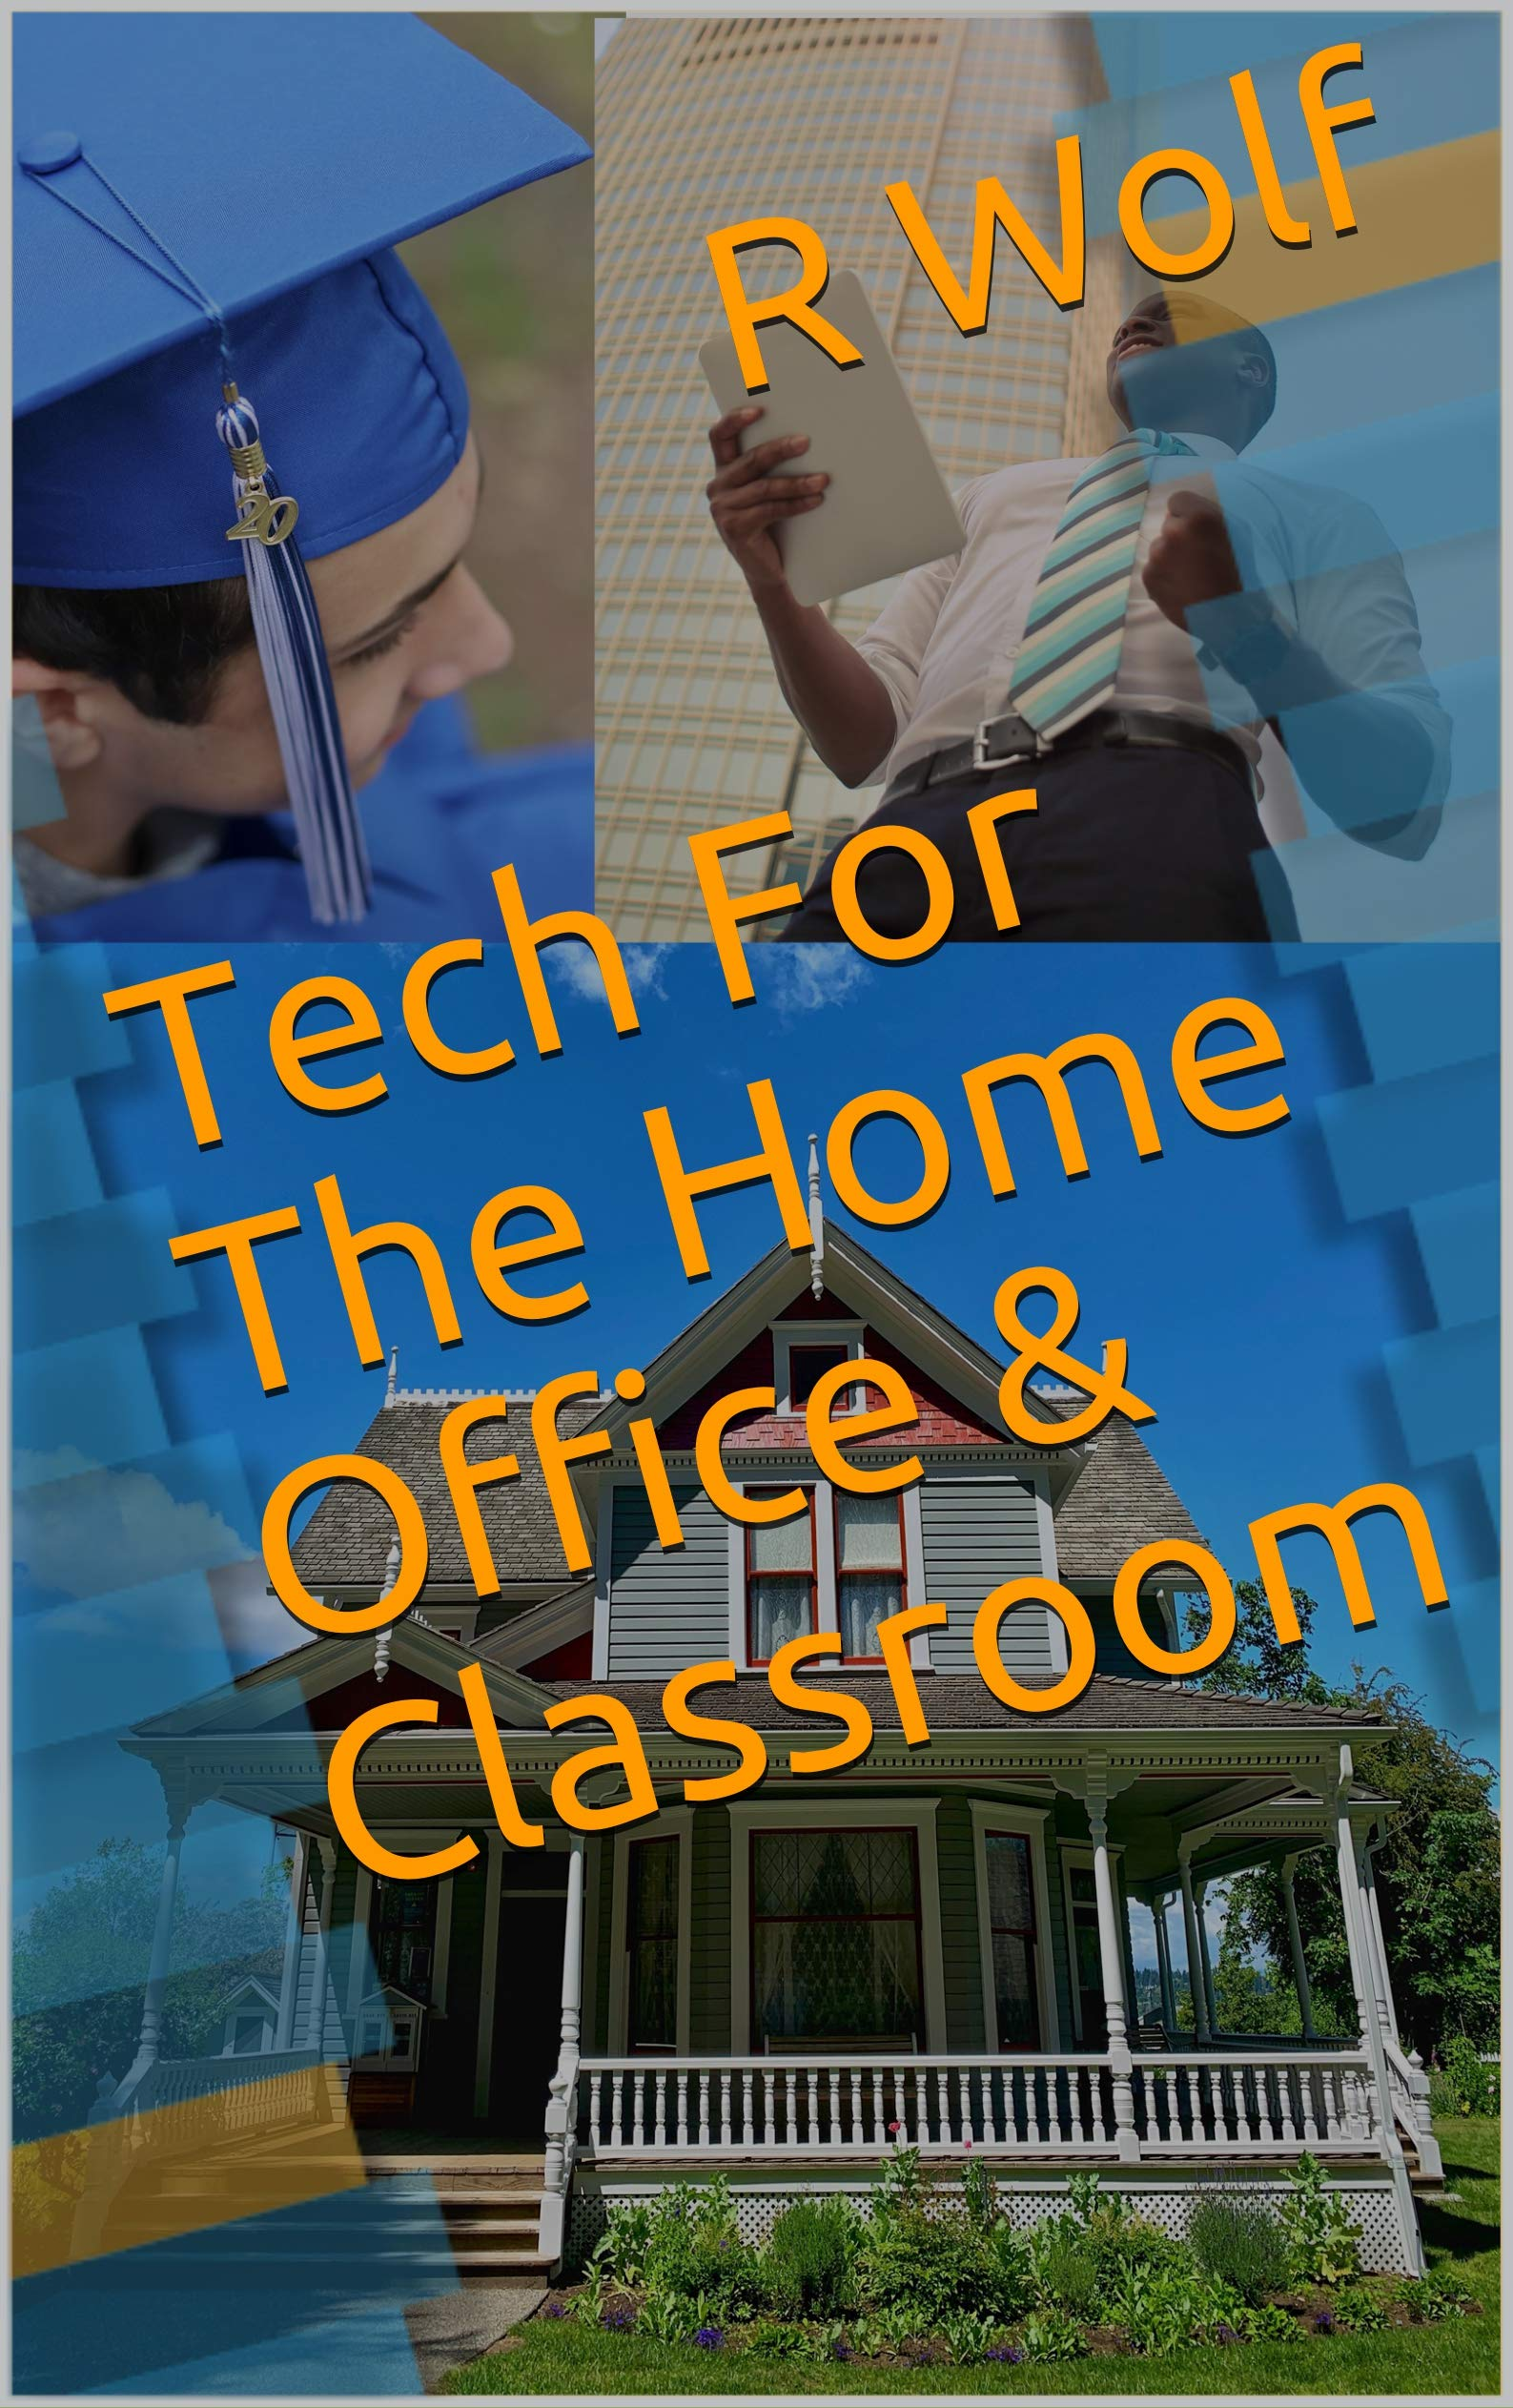 Tech For The Home Office & Classroom: Keeping it Simple